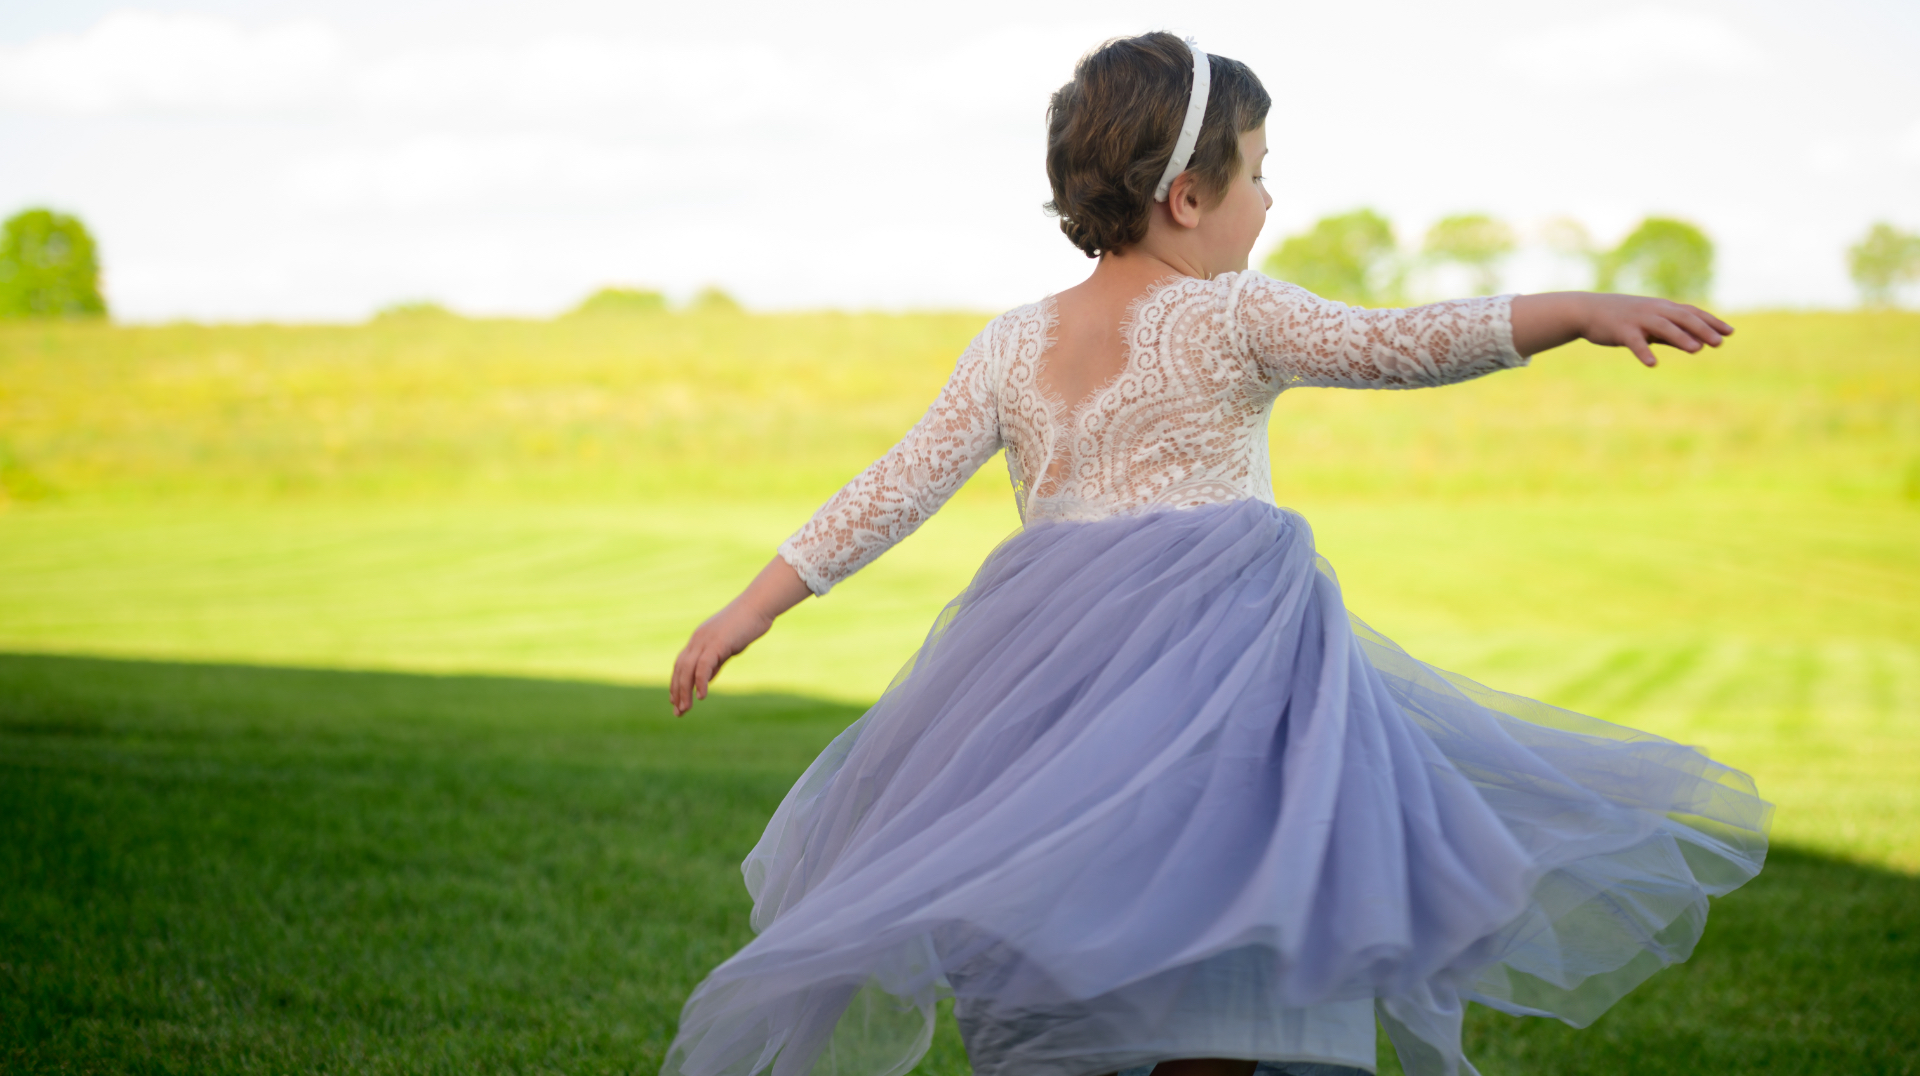 A photo of Leorah from behind as she twirls in an open field, her arms extended.